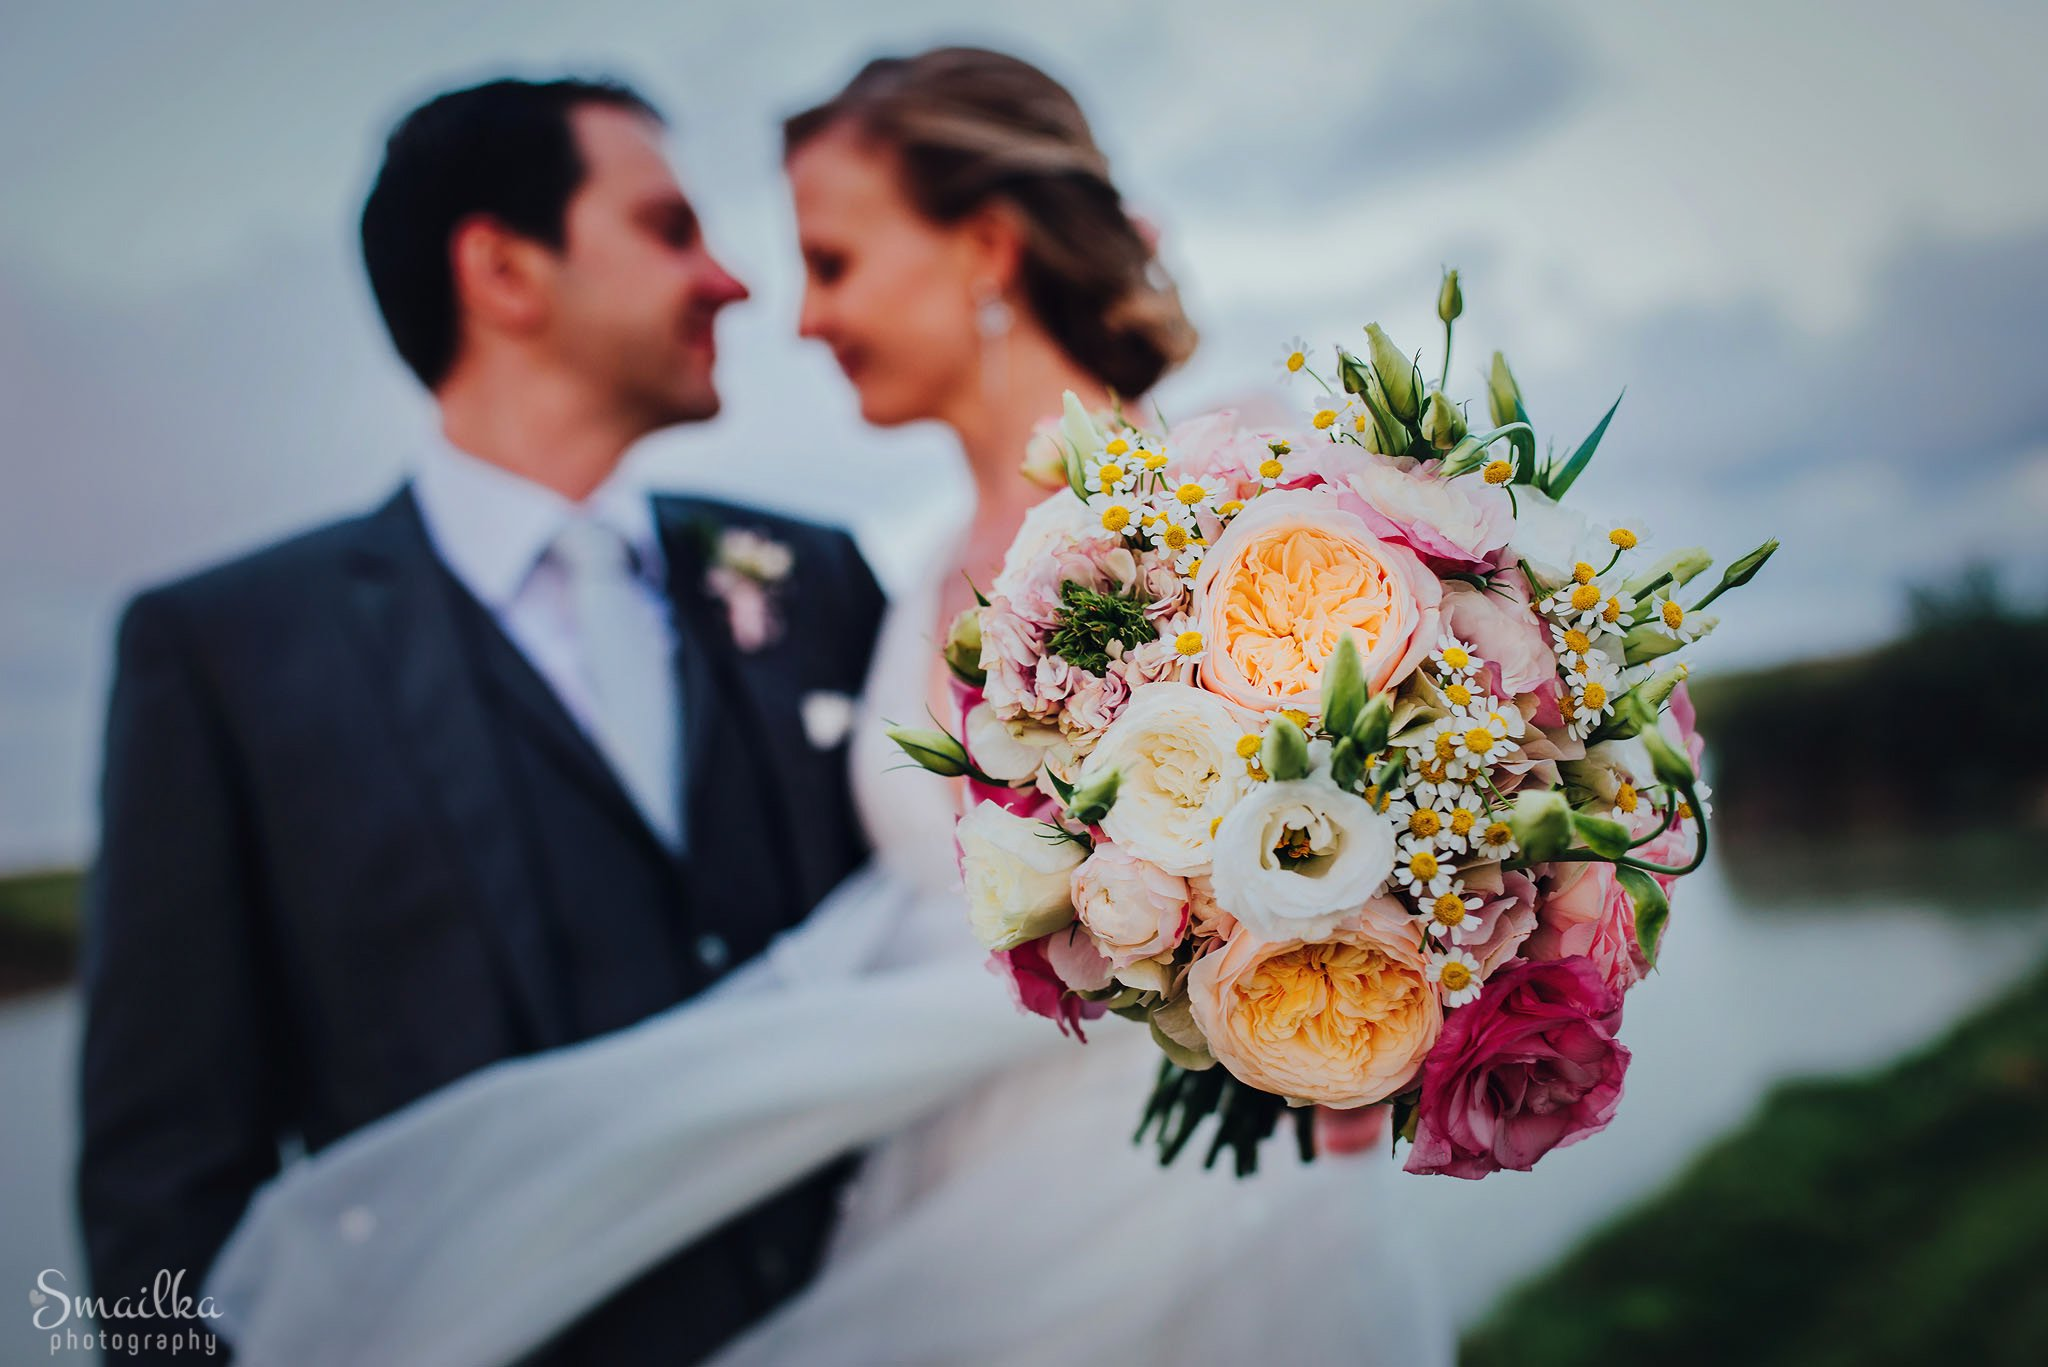 Wedding bouquet of fresh flowers